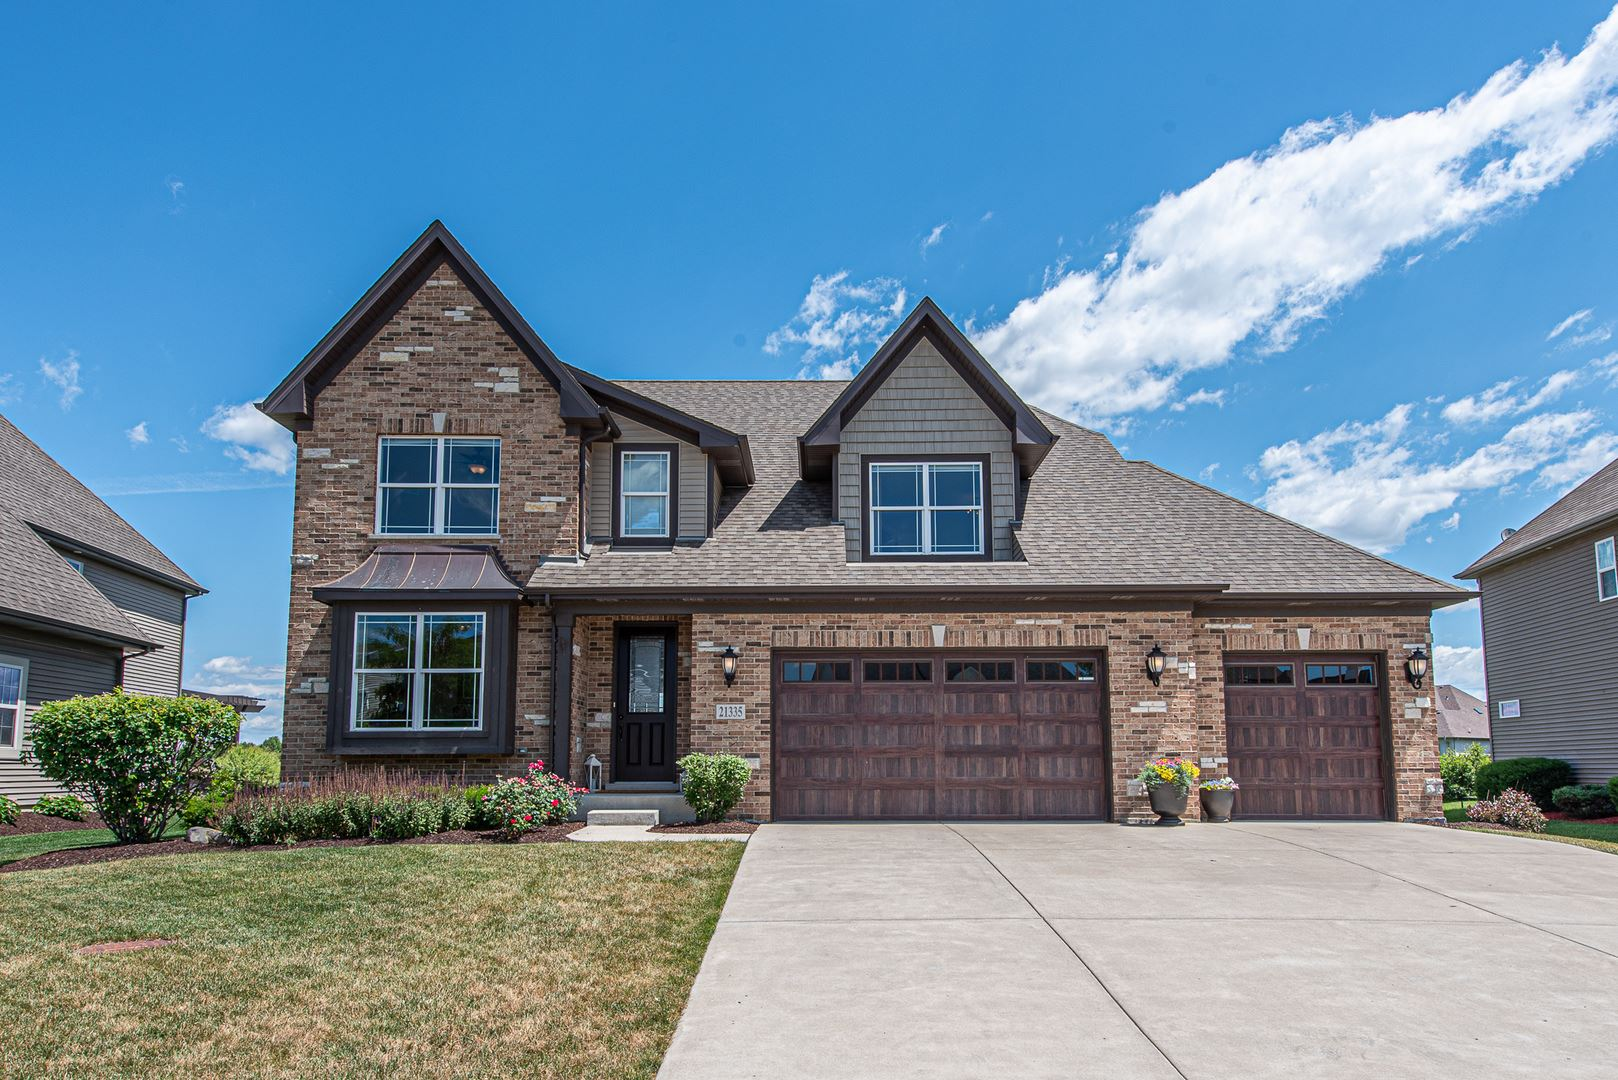 Photo of 21335 Willow Pass, Shorewood, IL 60404 (MLS # 11134585)